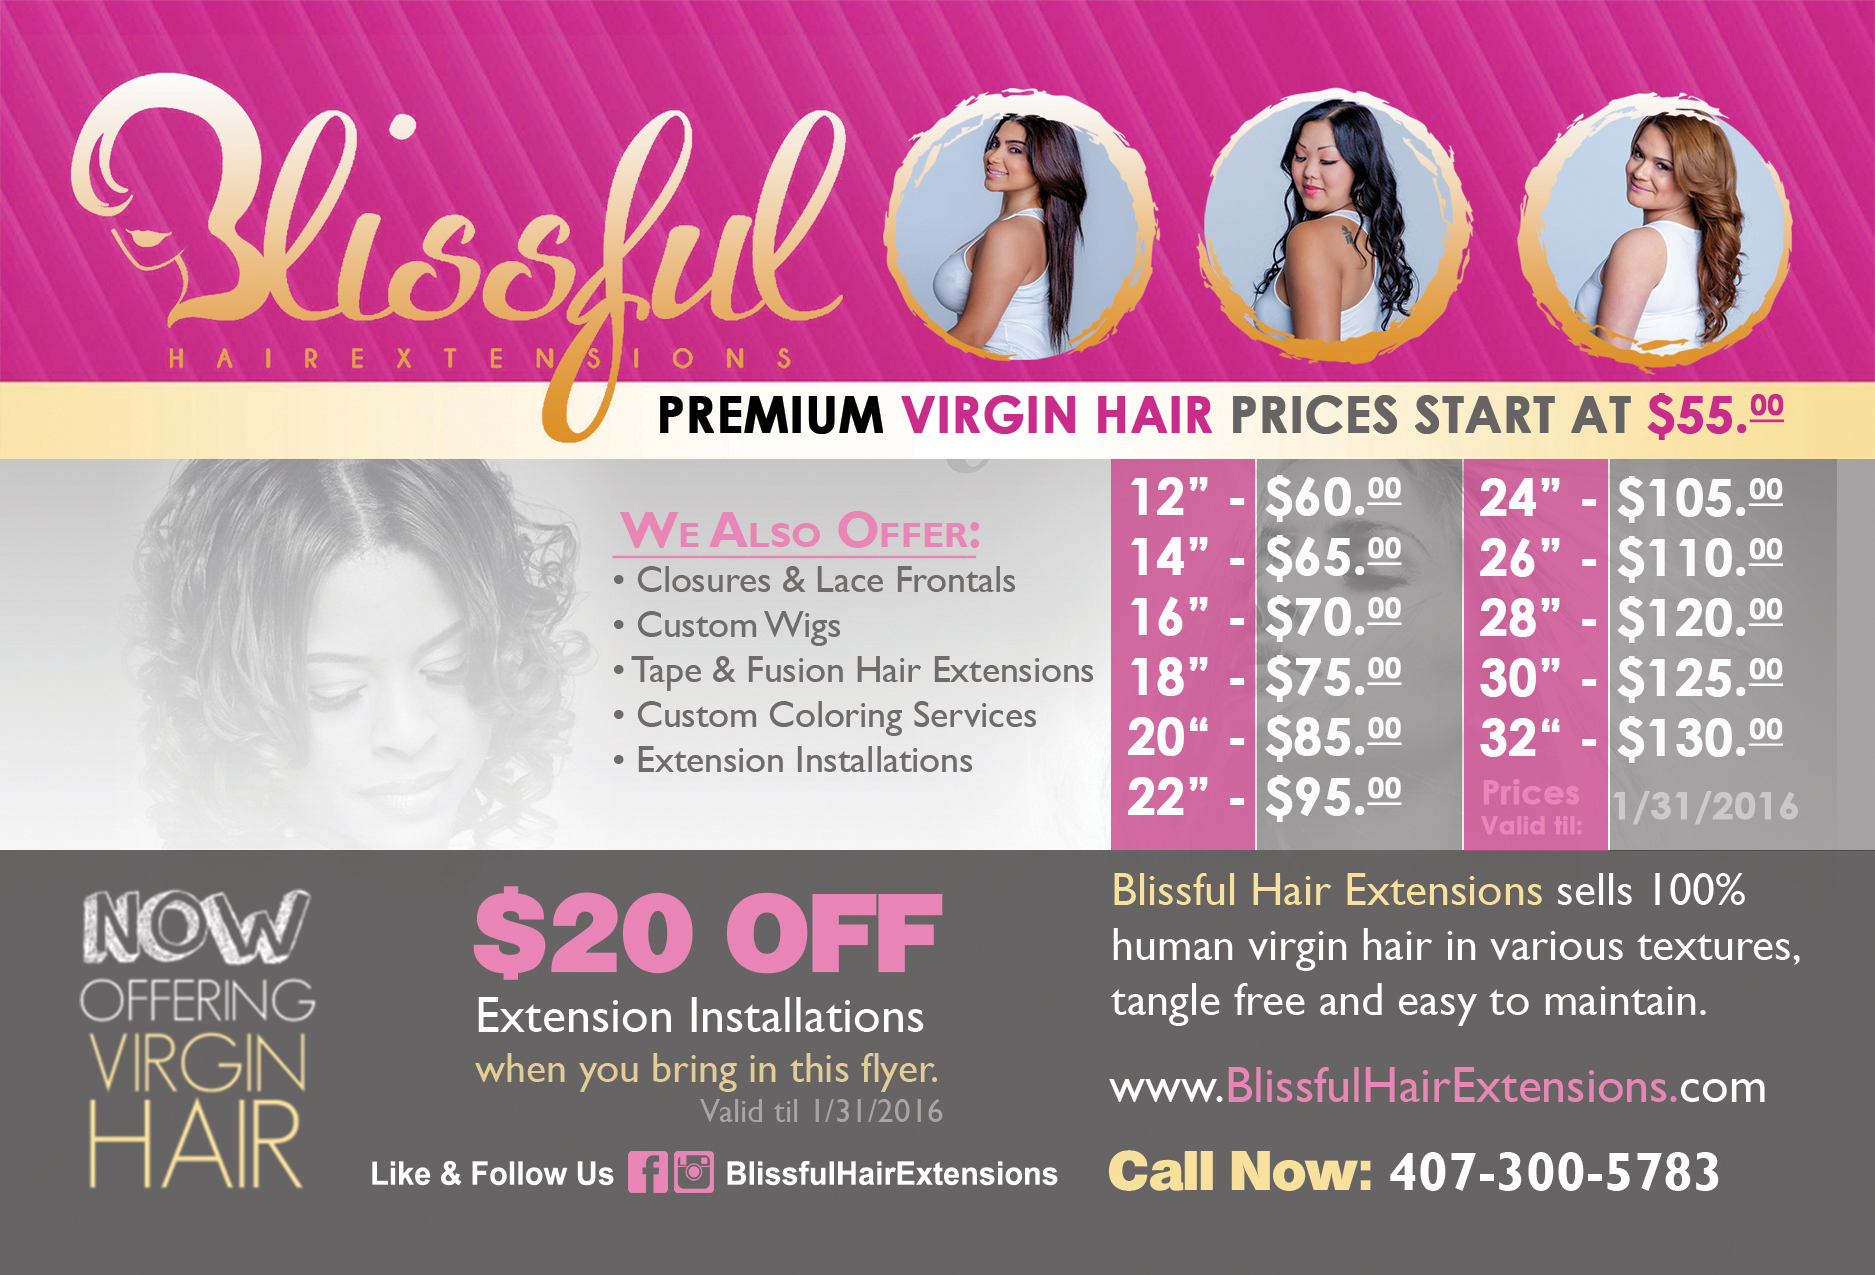 Blissful Hair Extensions - ASB Marketing Solutions